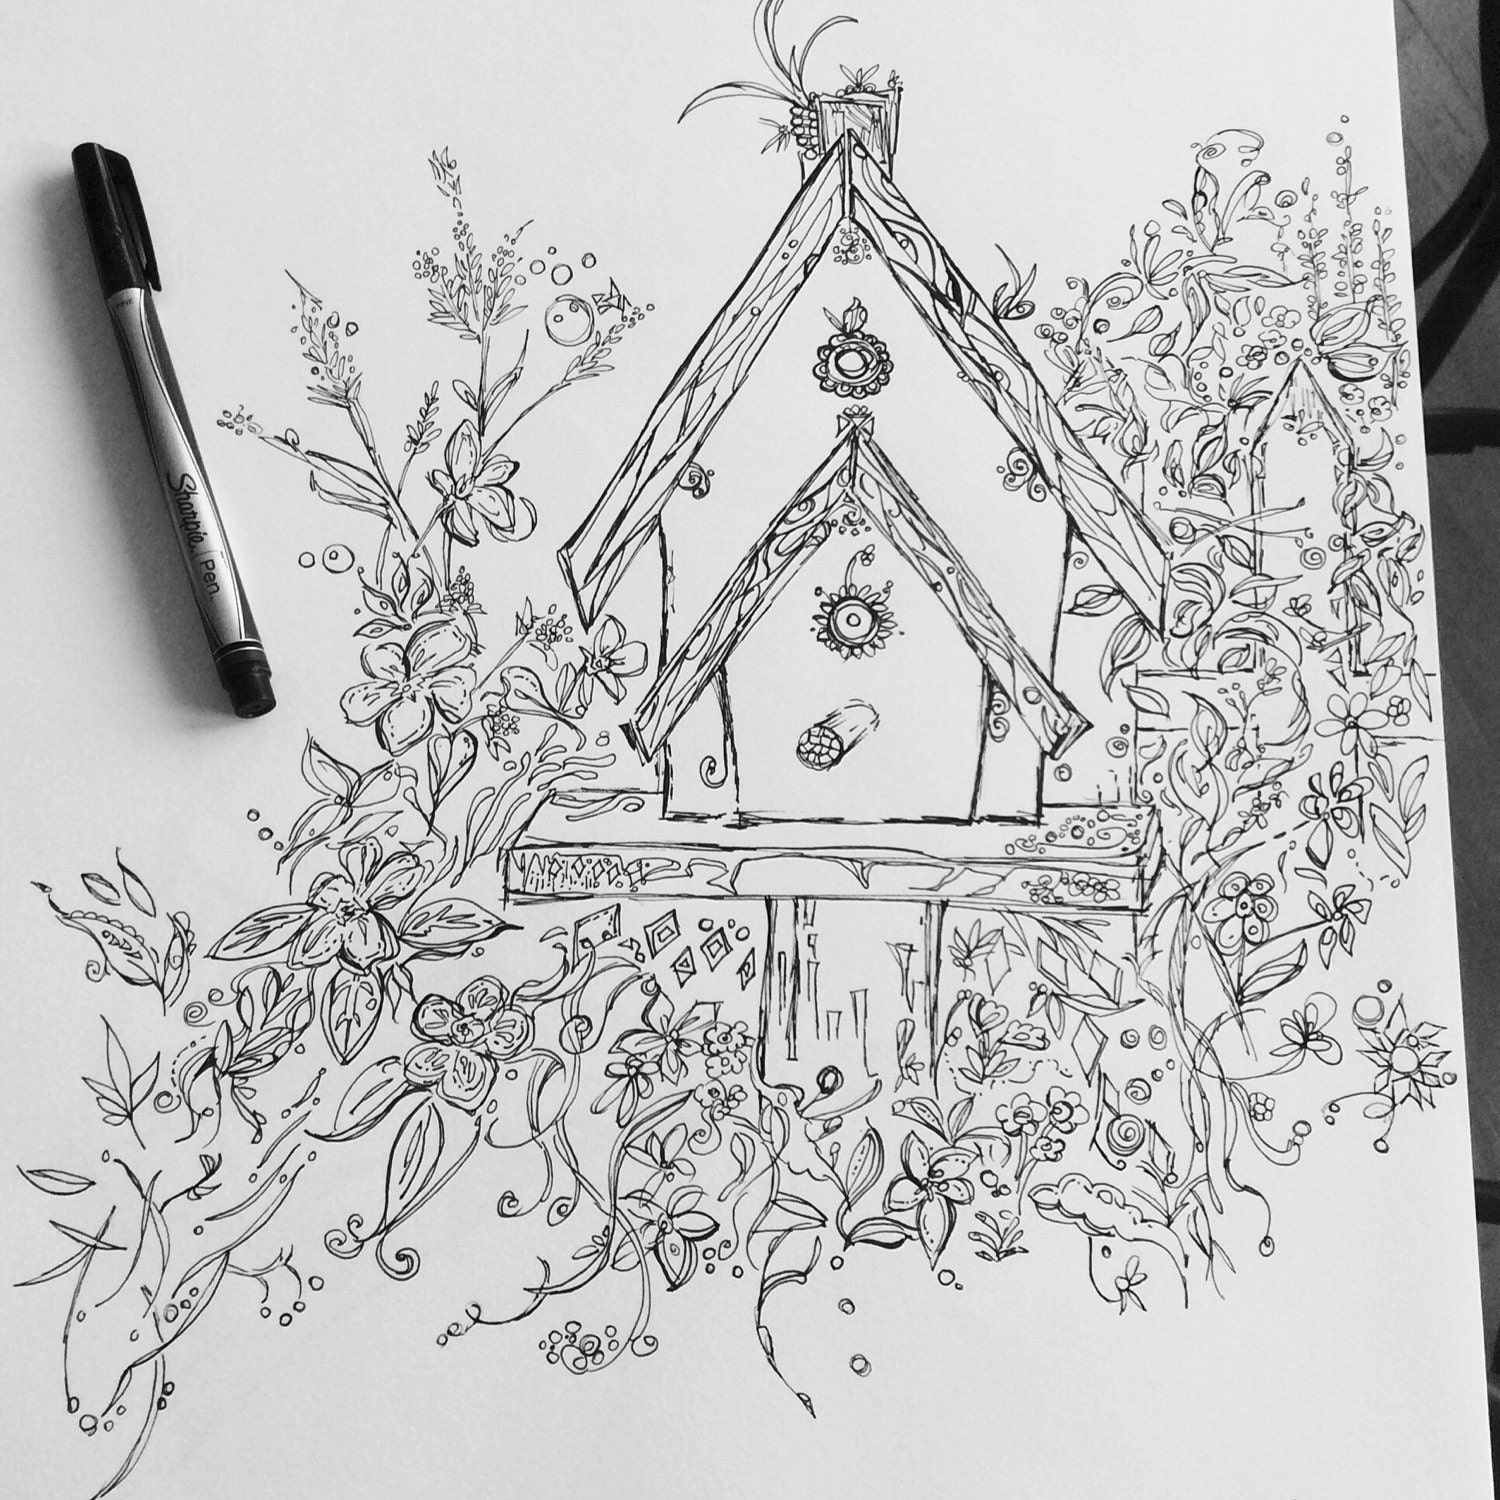 Birdhouse coloring sheet - Like This Item